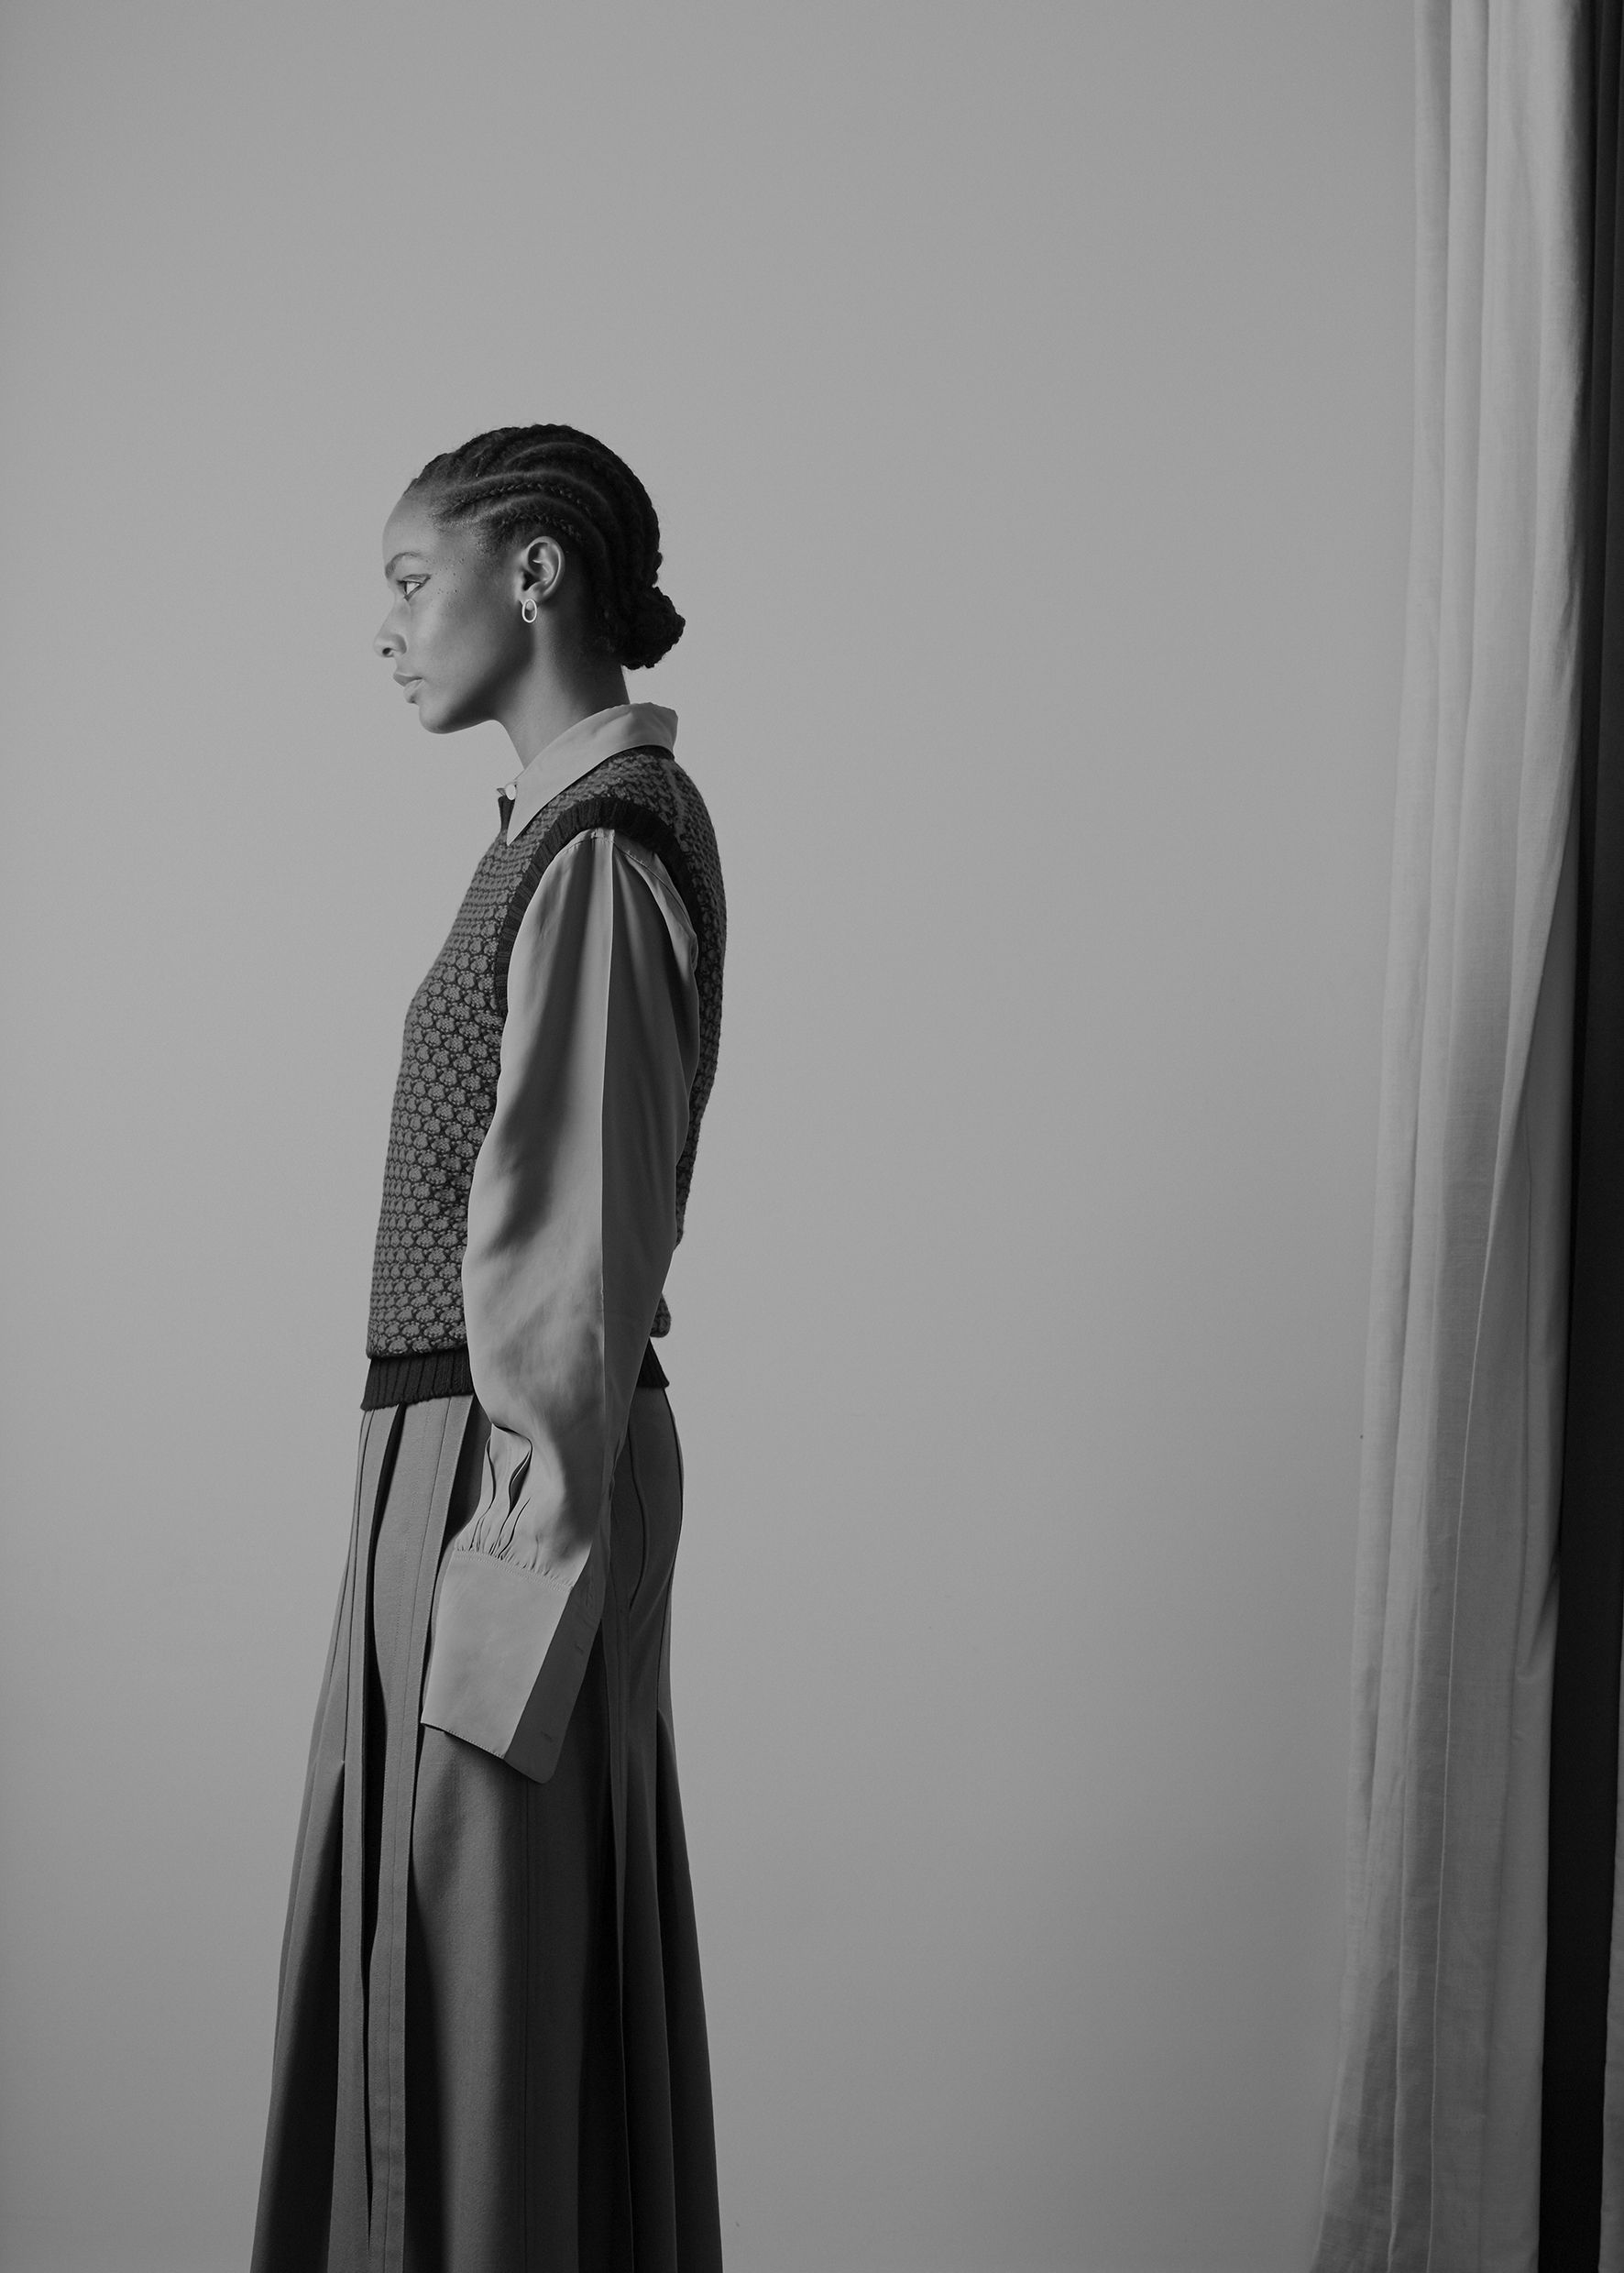 Viscose twill oversize shirt and long wrap wool blend skirt CÉLINE, honeycomb sleeveless jumper HOLLAND & HOLLAND,  golden earring COMPLETEDWORKS.